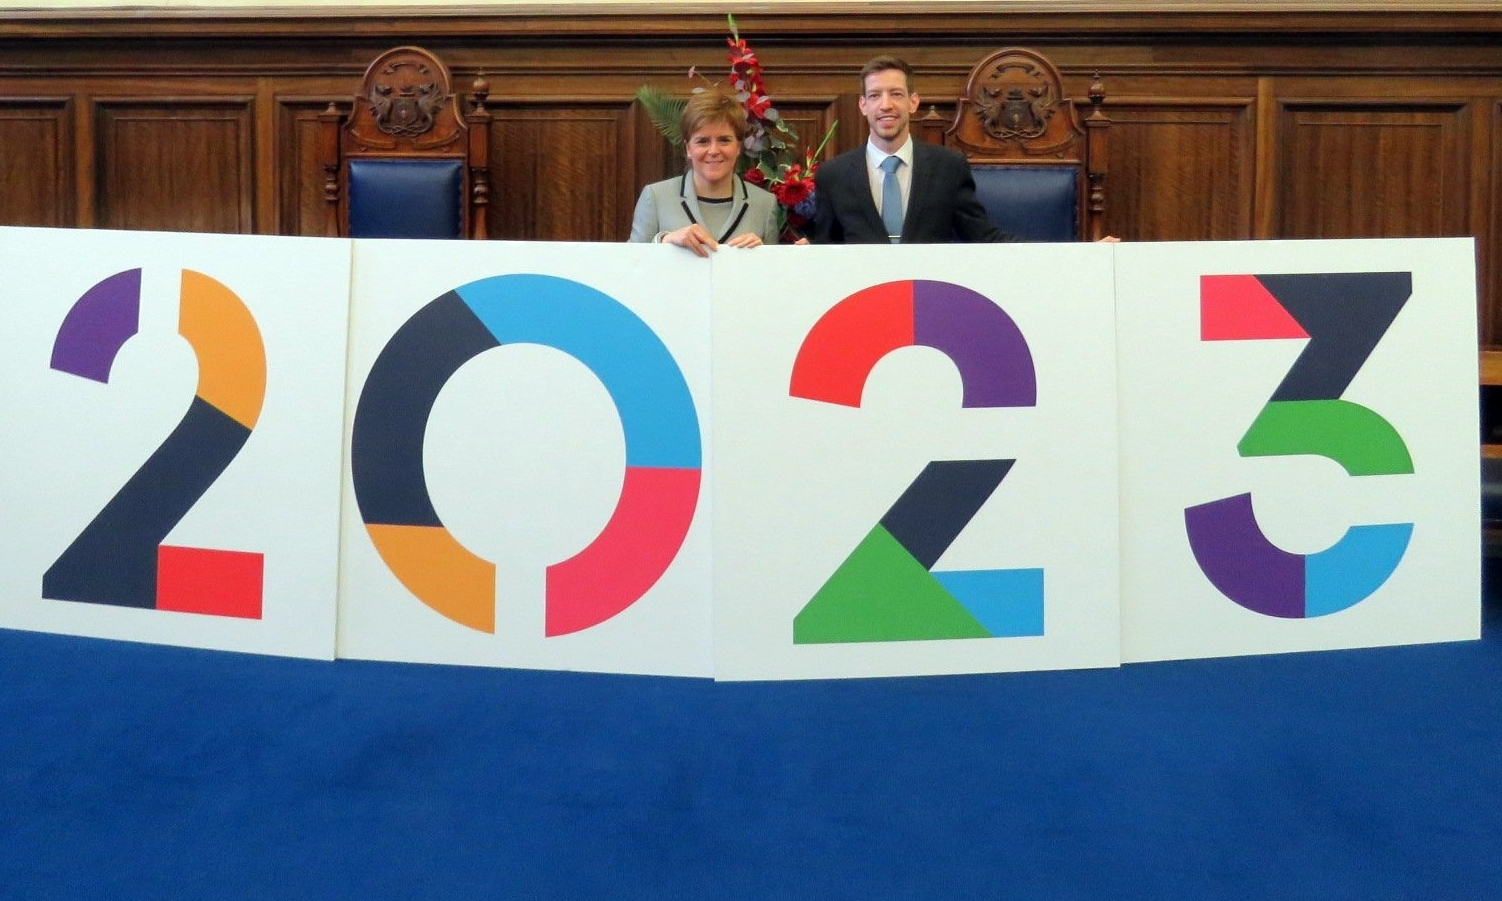 Nicola Sturgeon shows her support for the Dundee 2023 campaign alongside city council leader John Alexander.